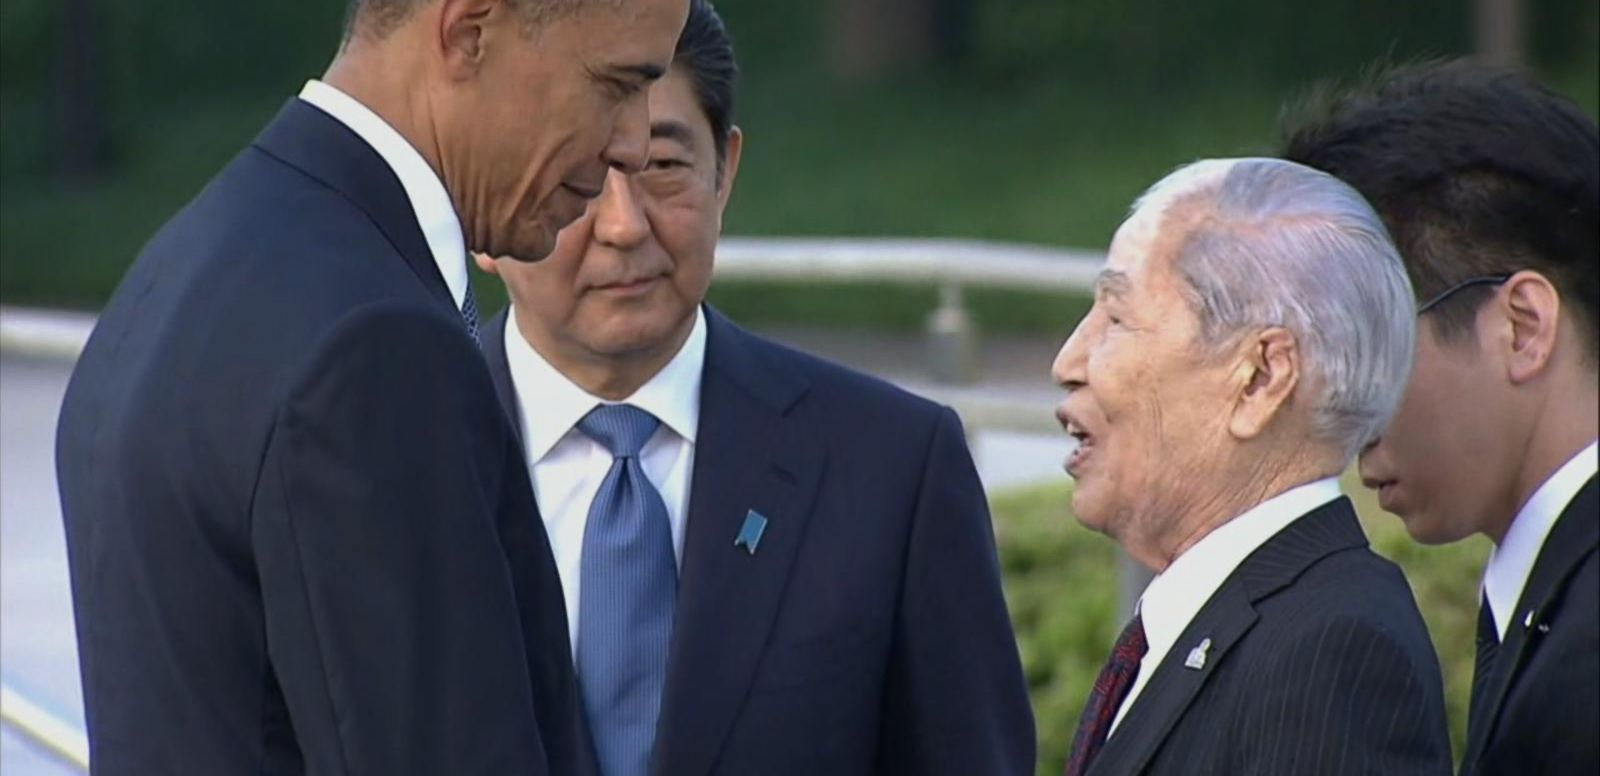 VIDEO: President Obama Becomes 1st Sitting President to Visit Hiroshima